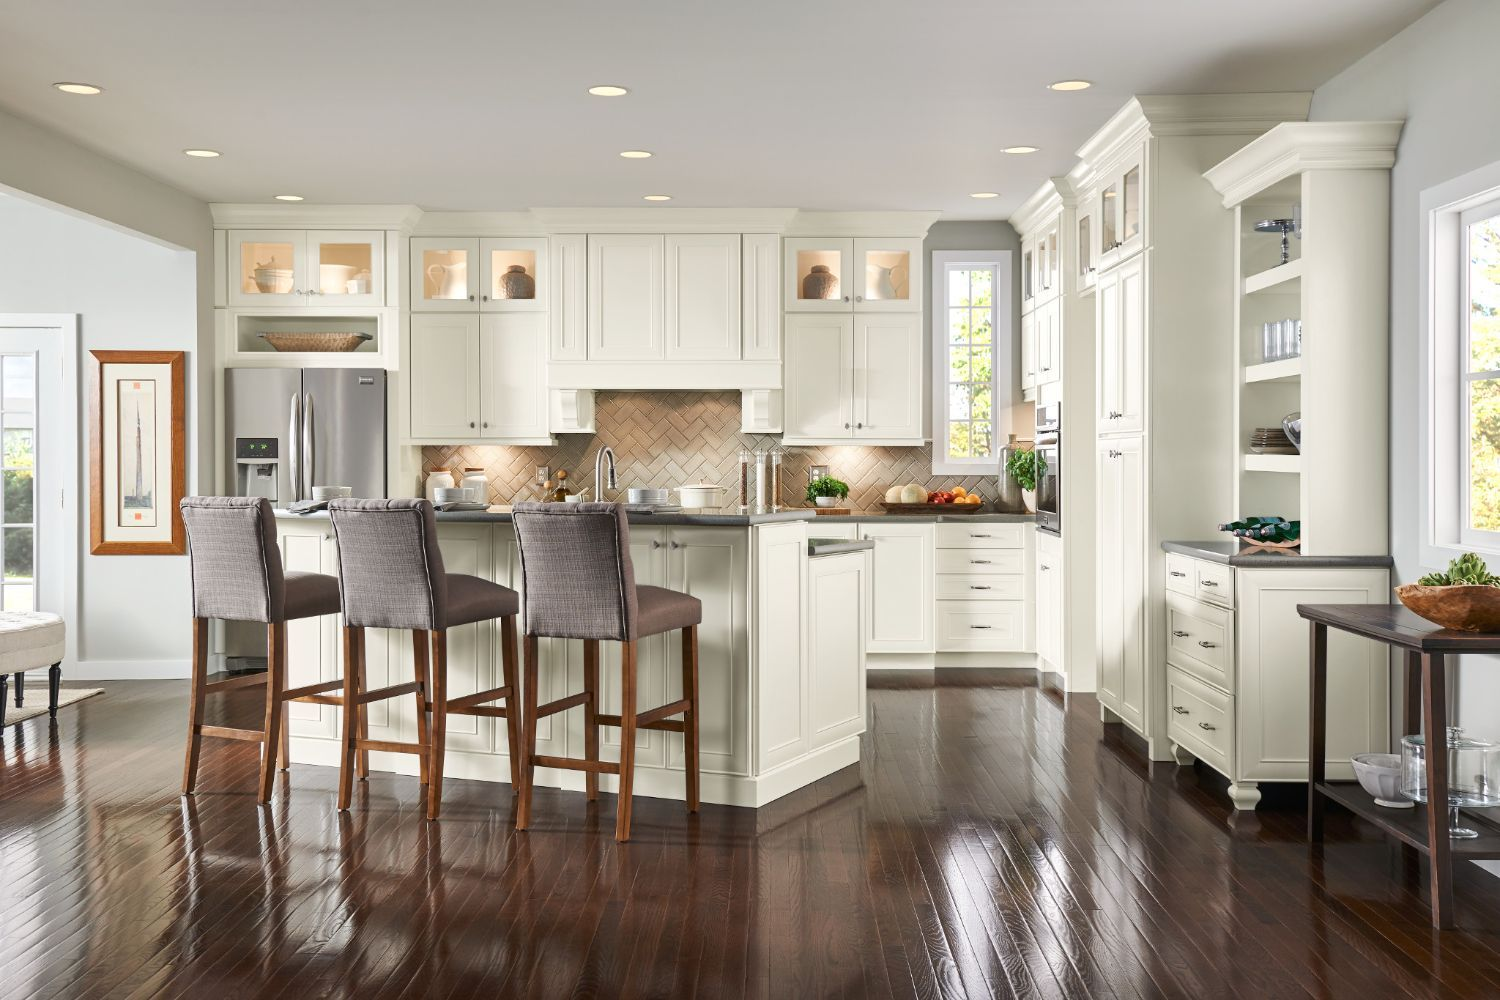 Atherton Collection American Woodmark Kitchen Remodel White Modern Kitchen Kitchen Remodel Small